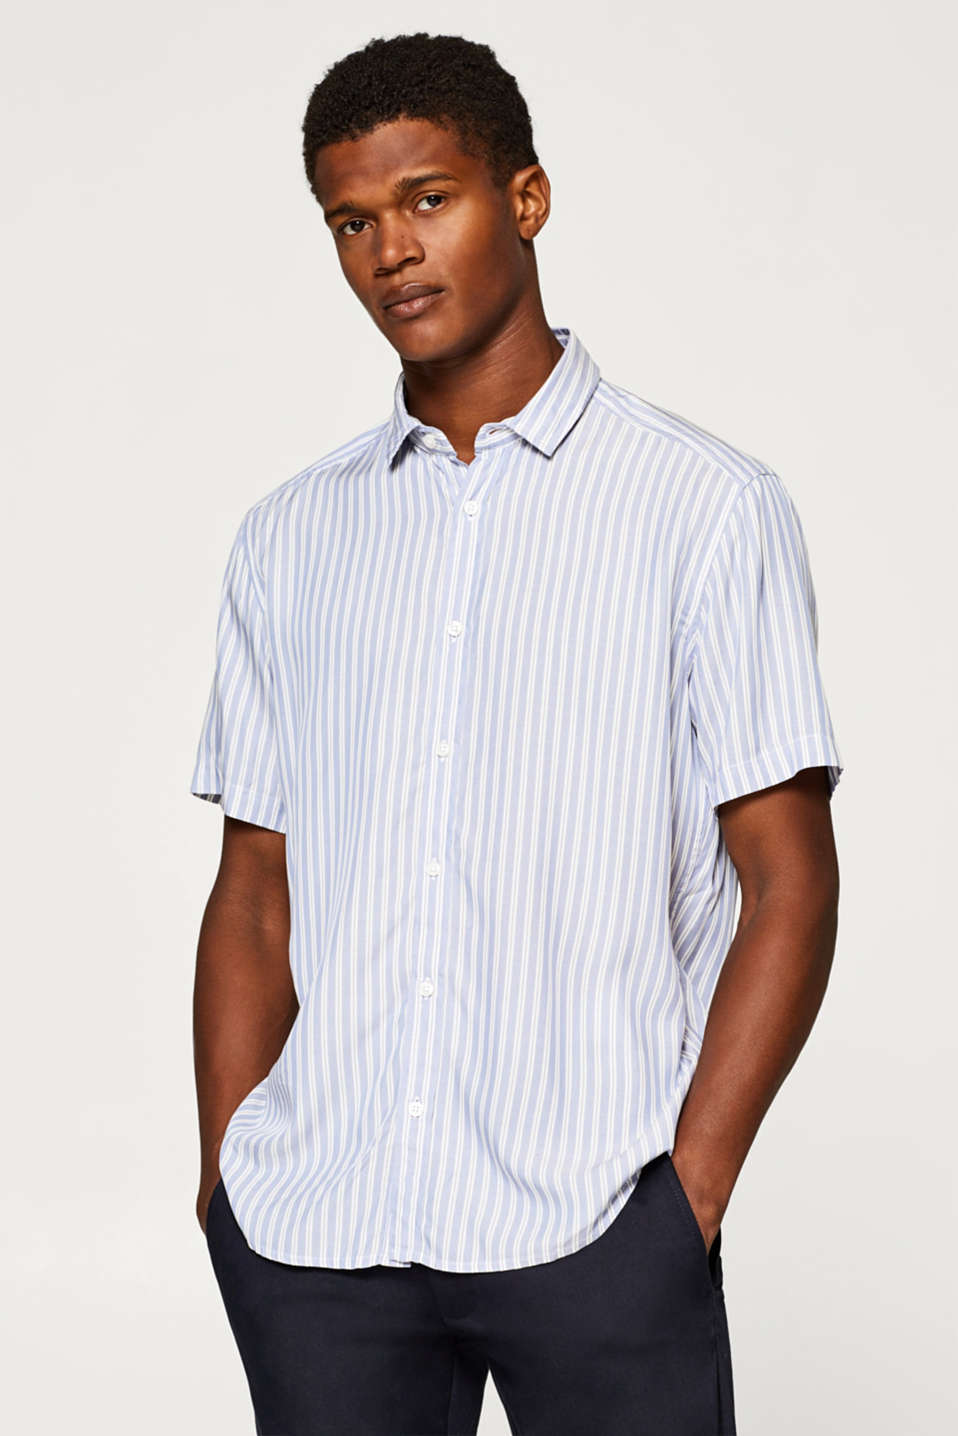 Esprit - Short sleeve shirt with stripes, 100% viscose